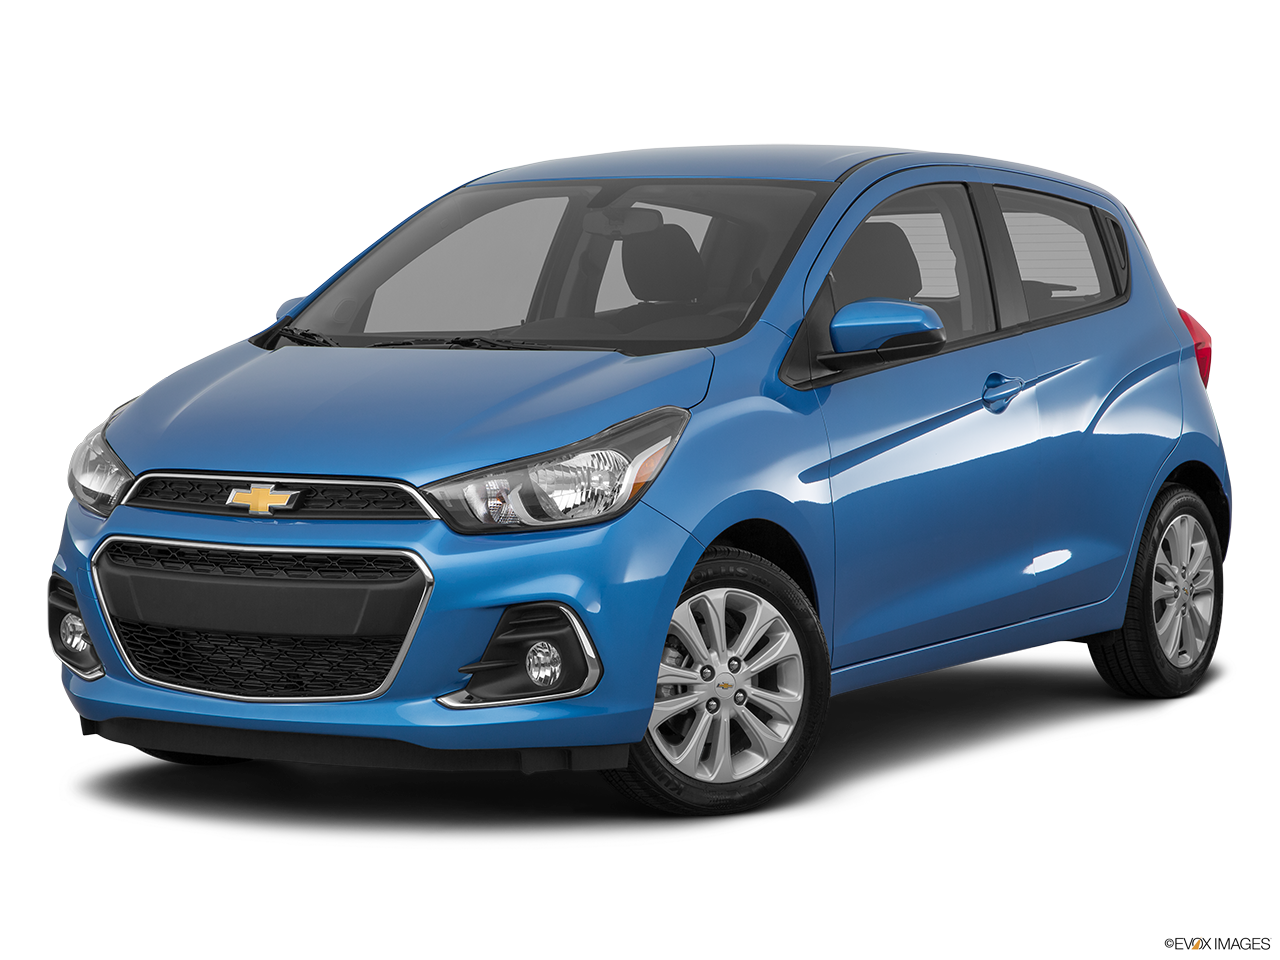 New Chevrolet Volt Newport >> 2016 Chevrolet Spark Hampton Roads | Casey Chevrolet